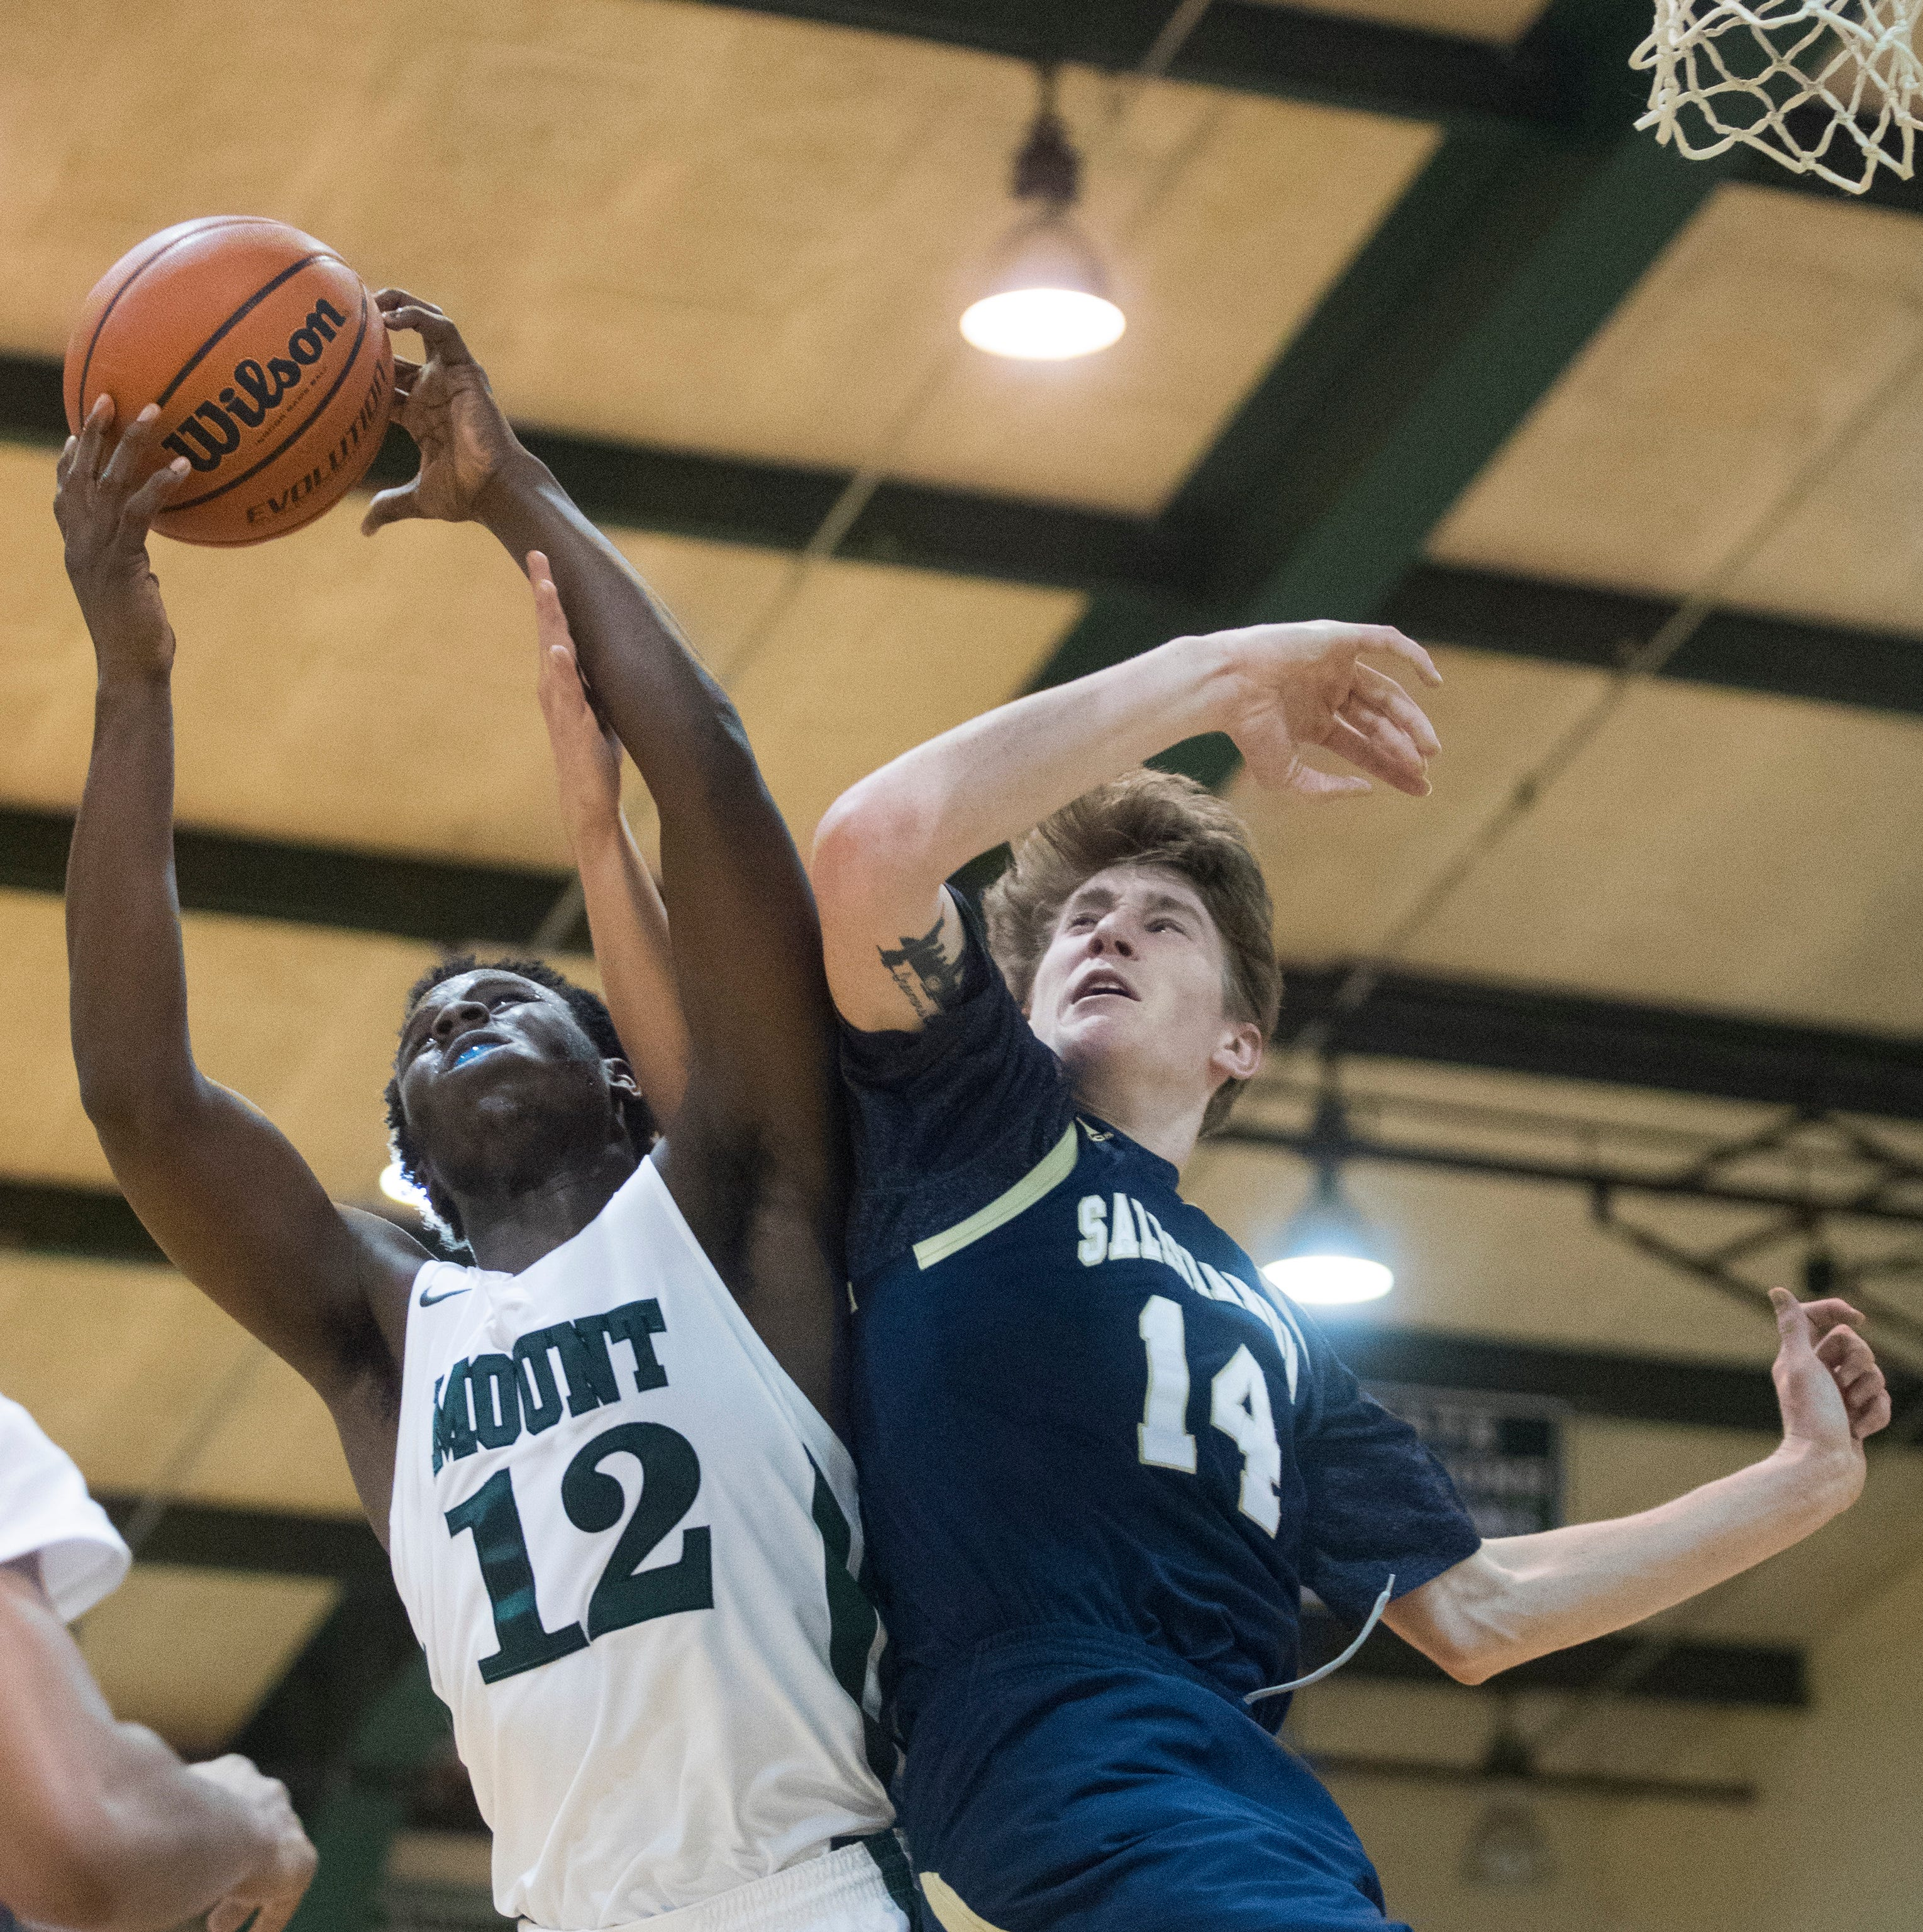 Major shuffling in Delaware Online boys basketball rankings